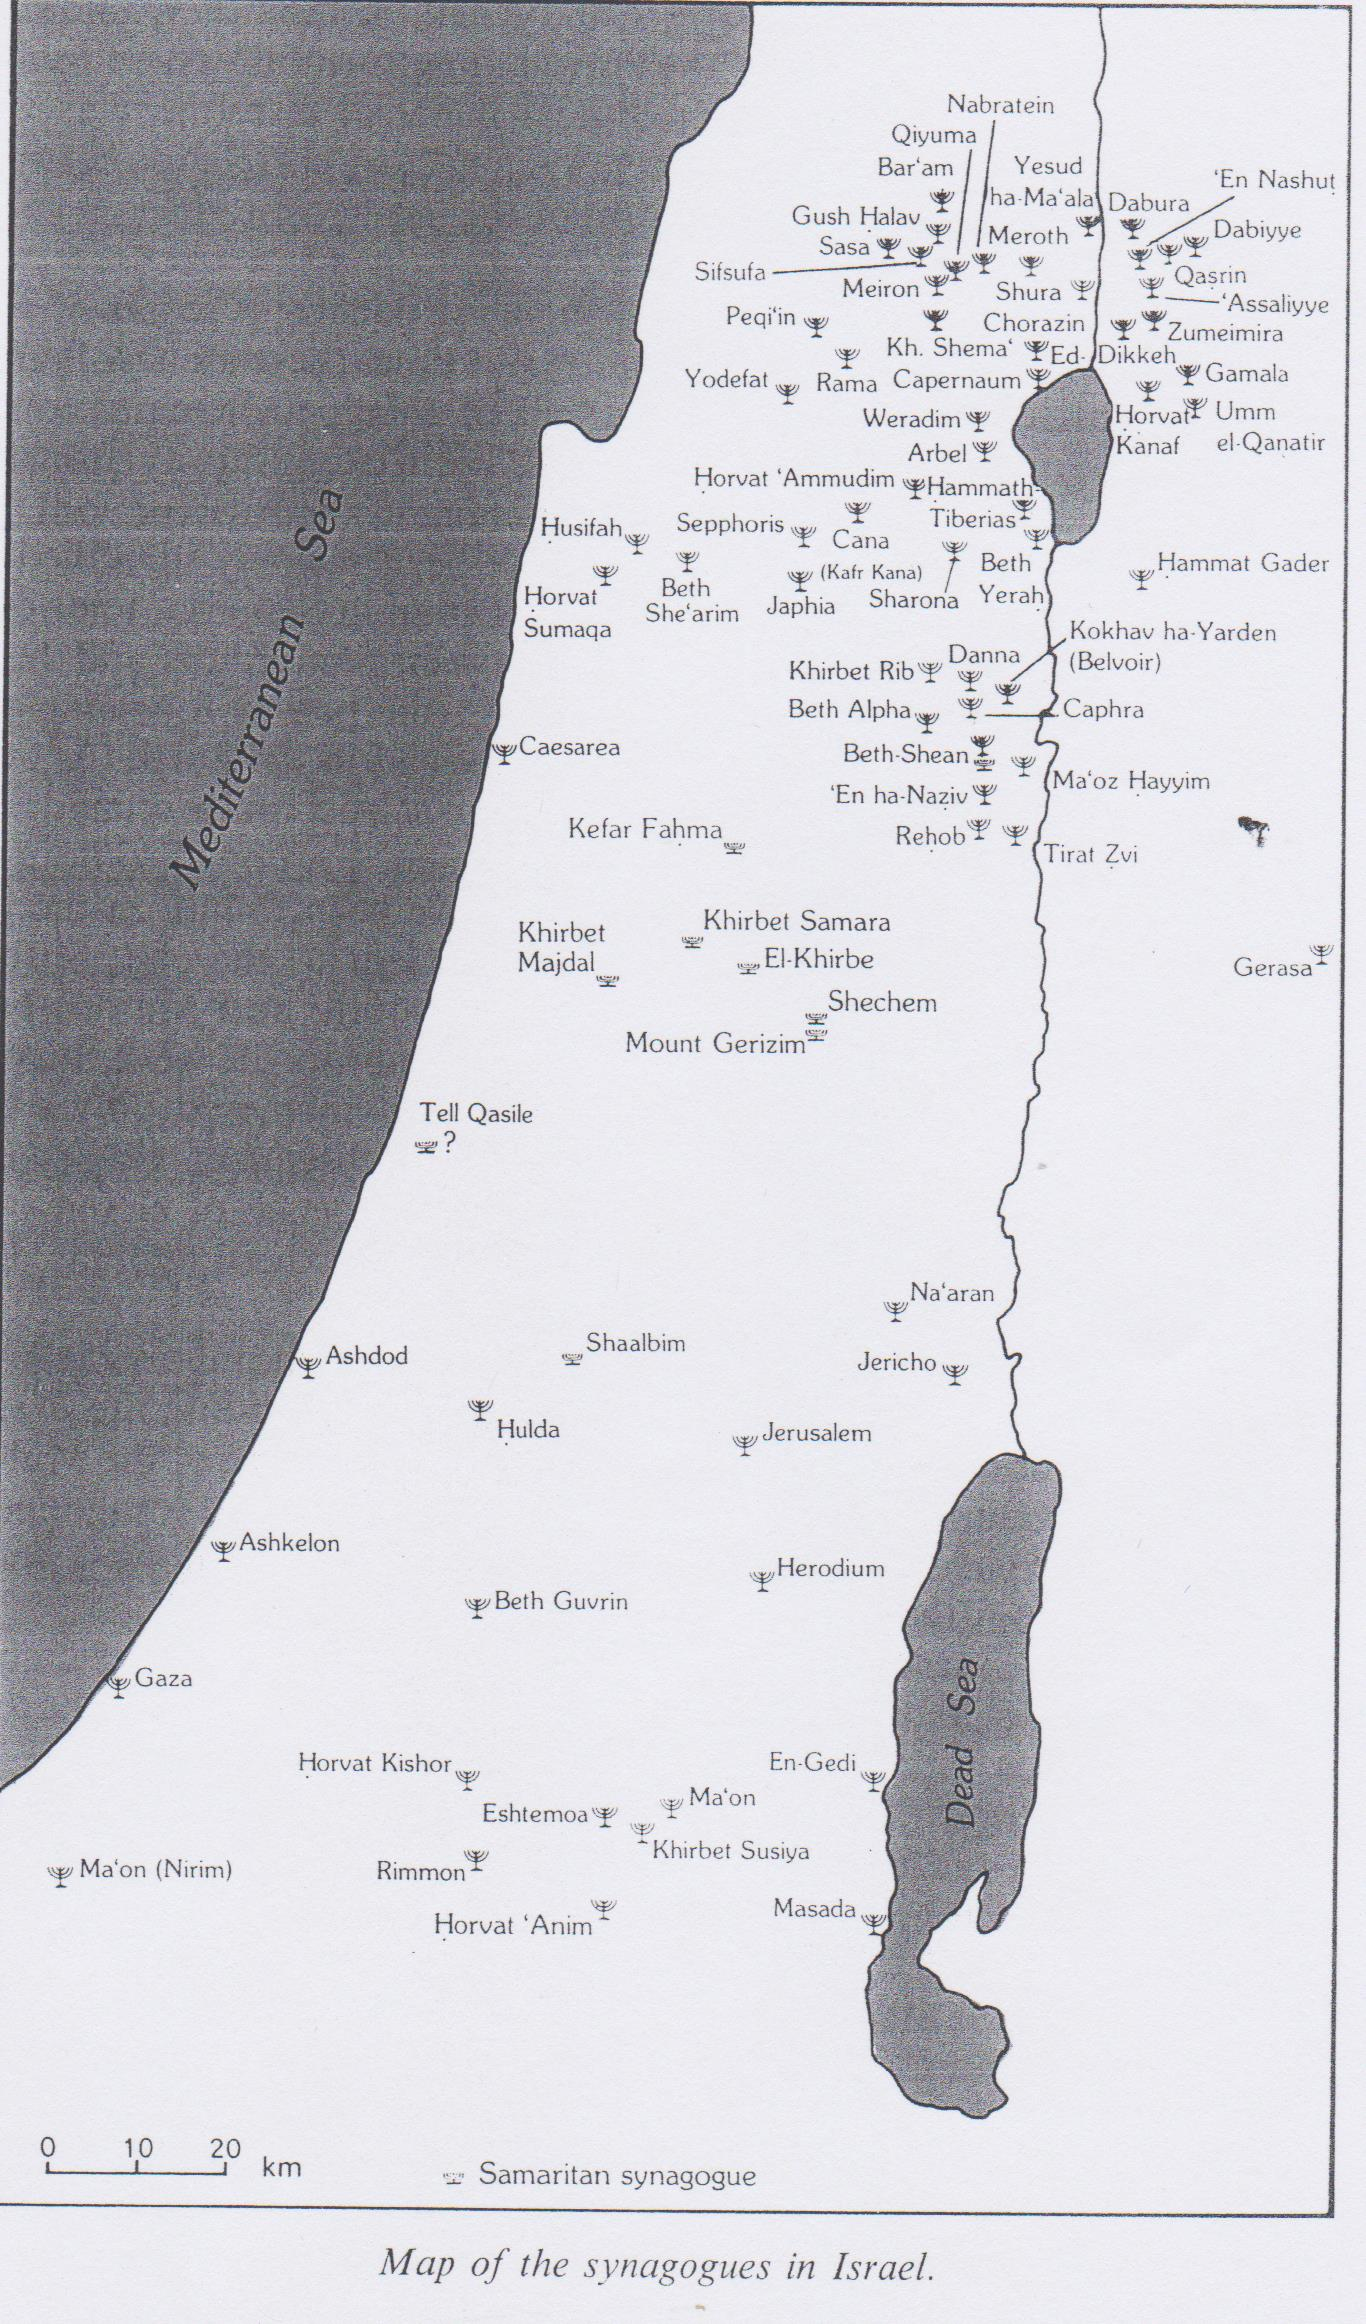 Distribution Maps of Ancient Synagogues - The Bornblum Eretz ...